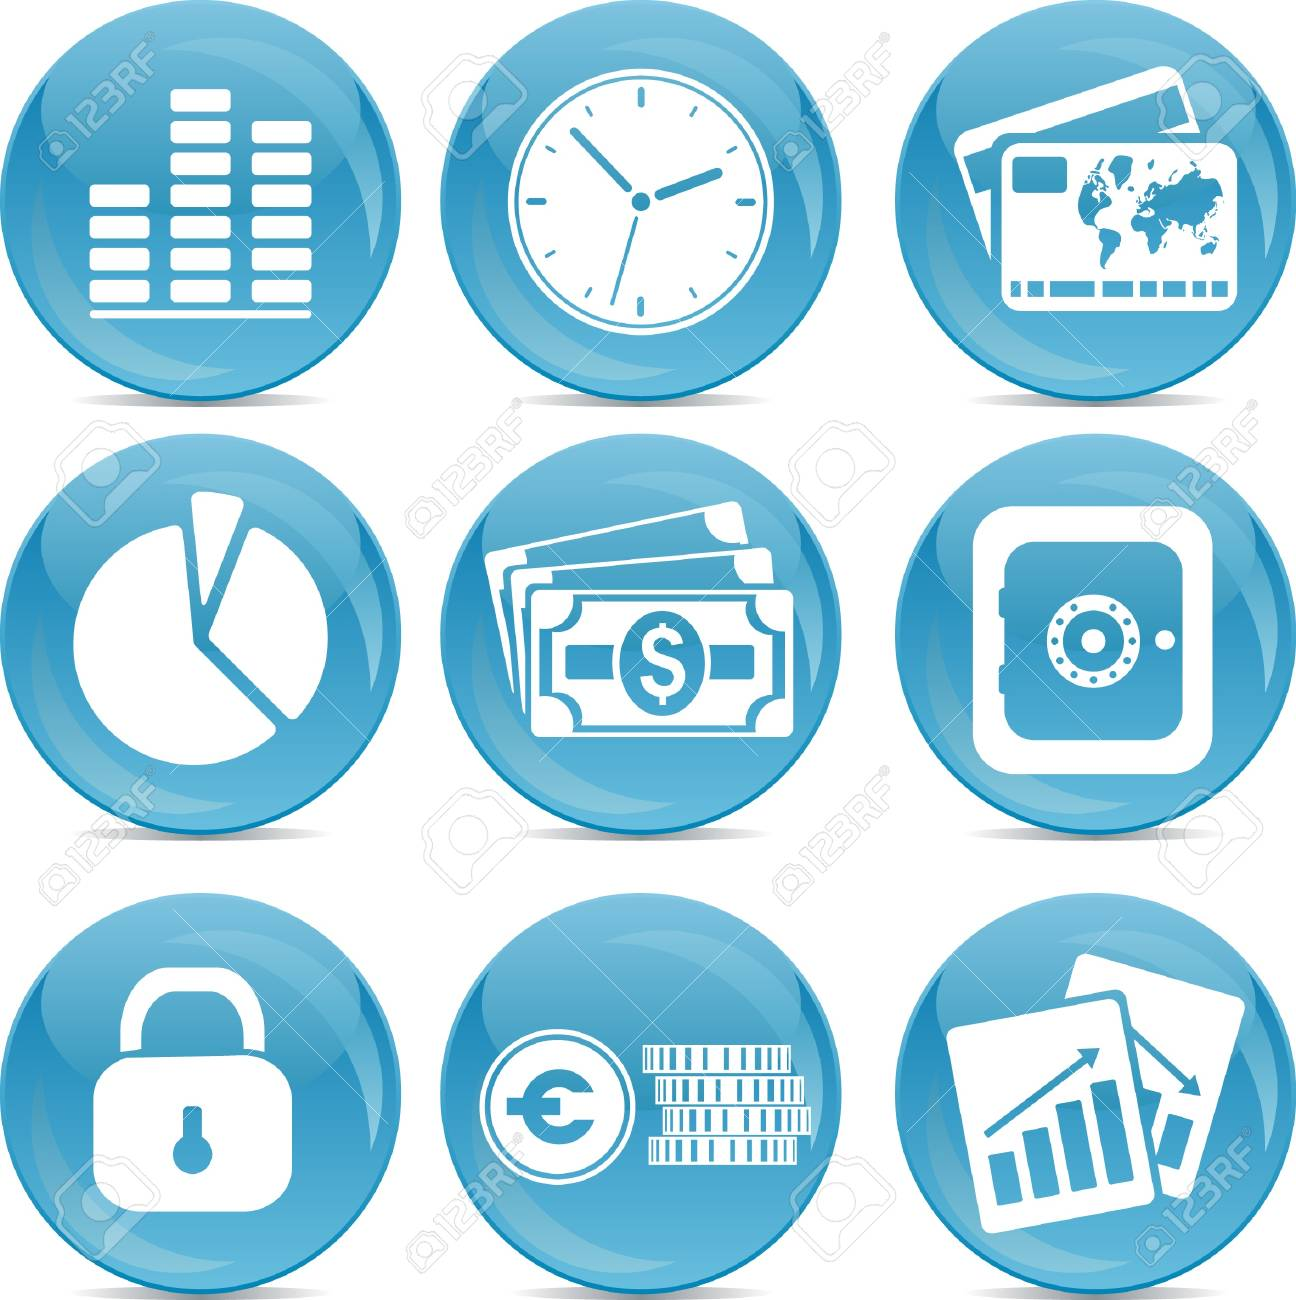 blue ball business icons Stock Vector - 14987656